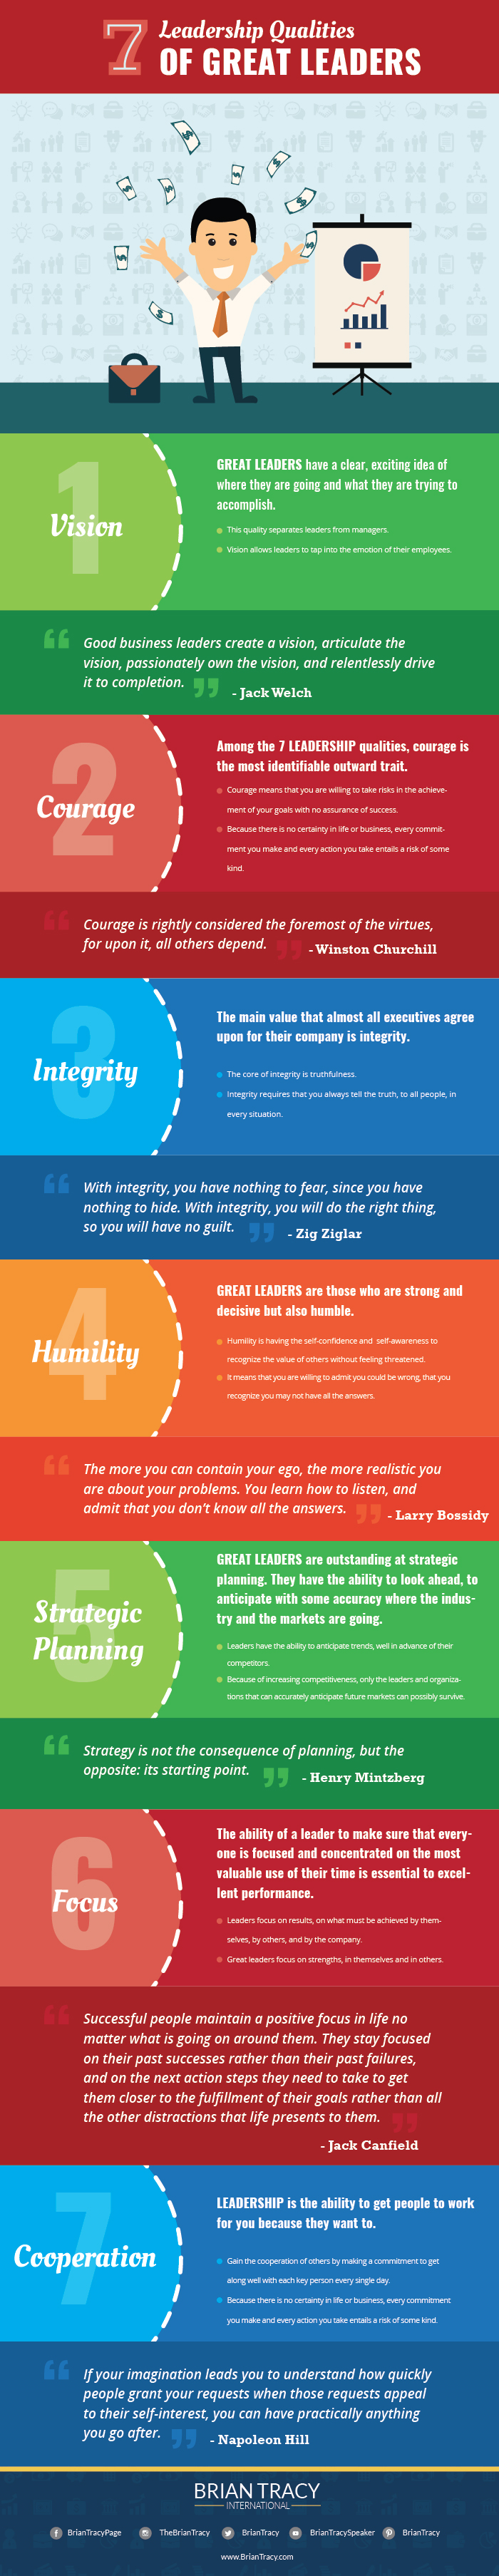 leadership qualities infographic brian tracy